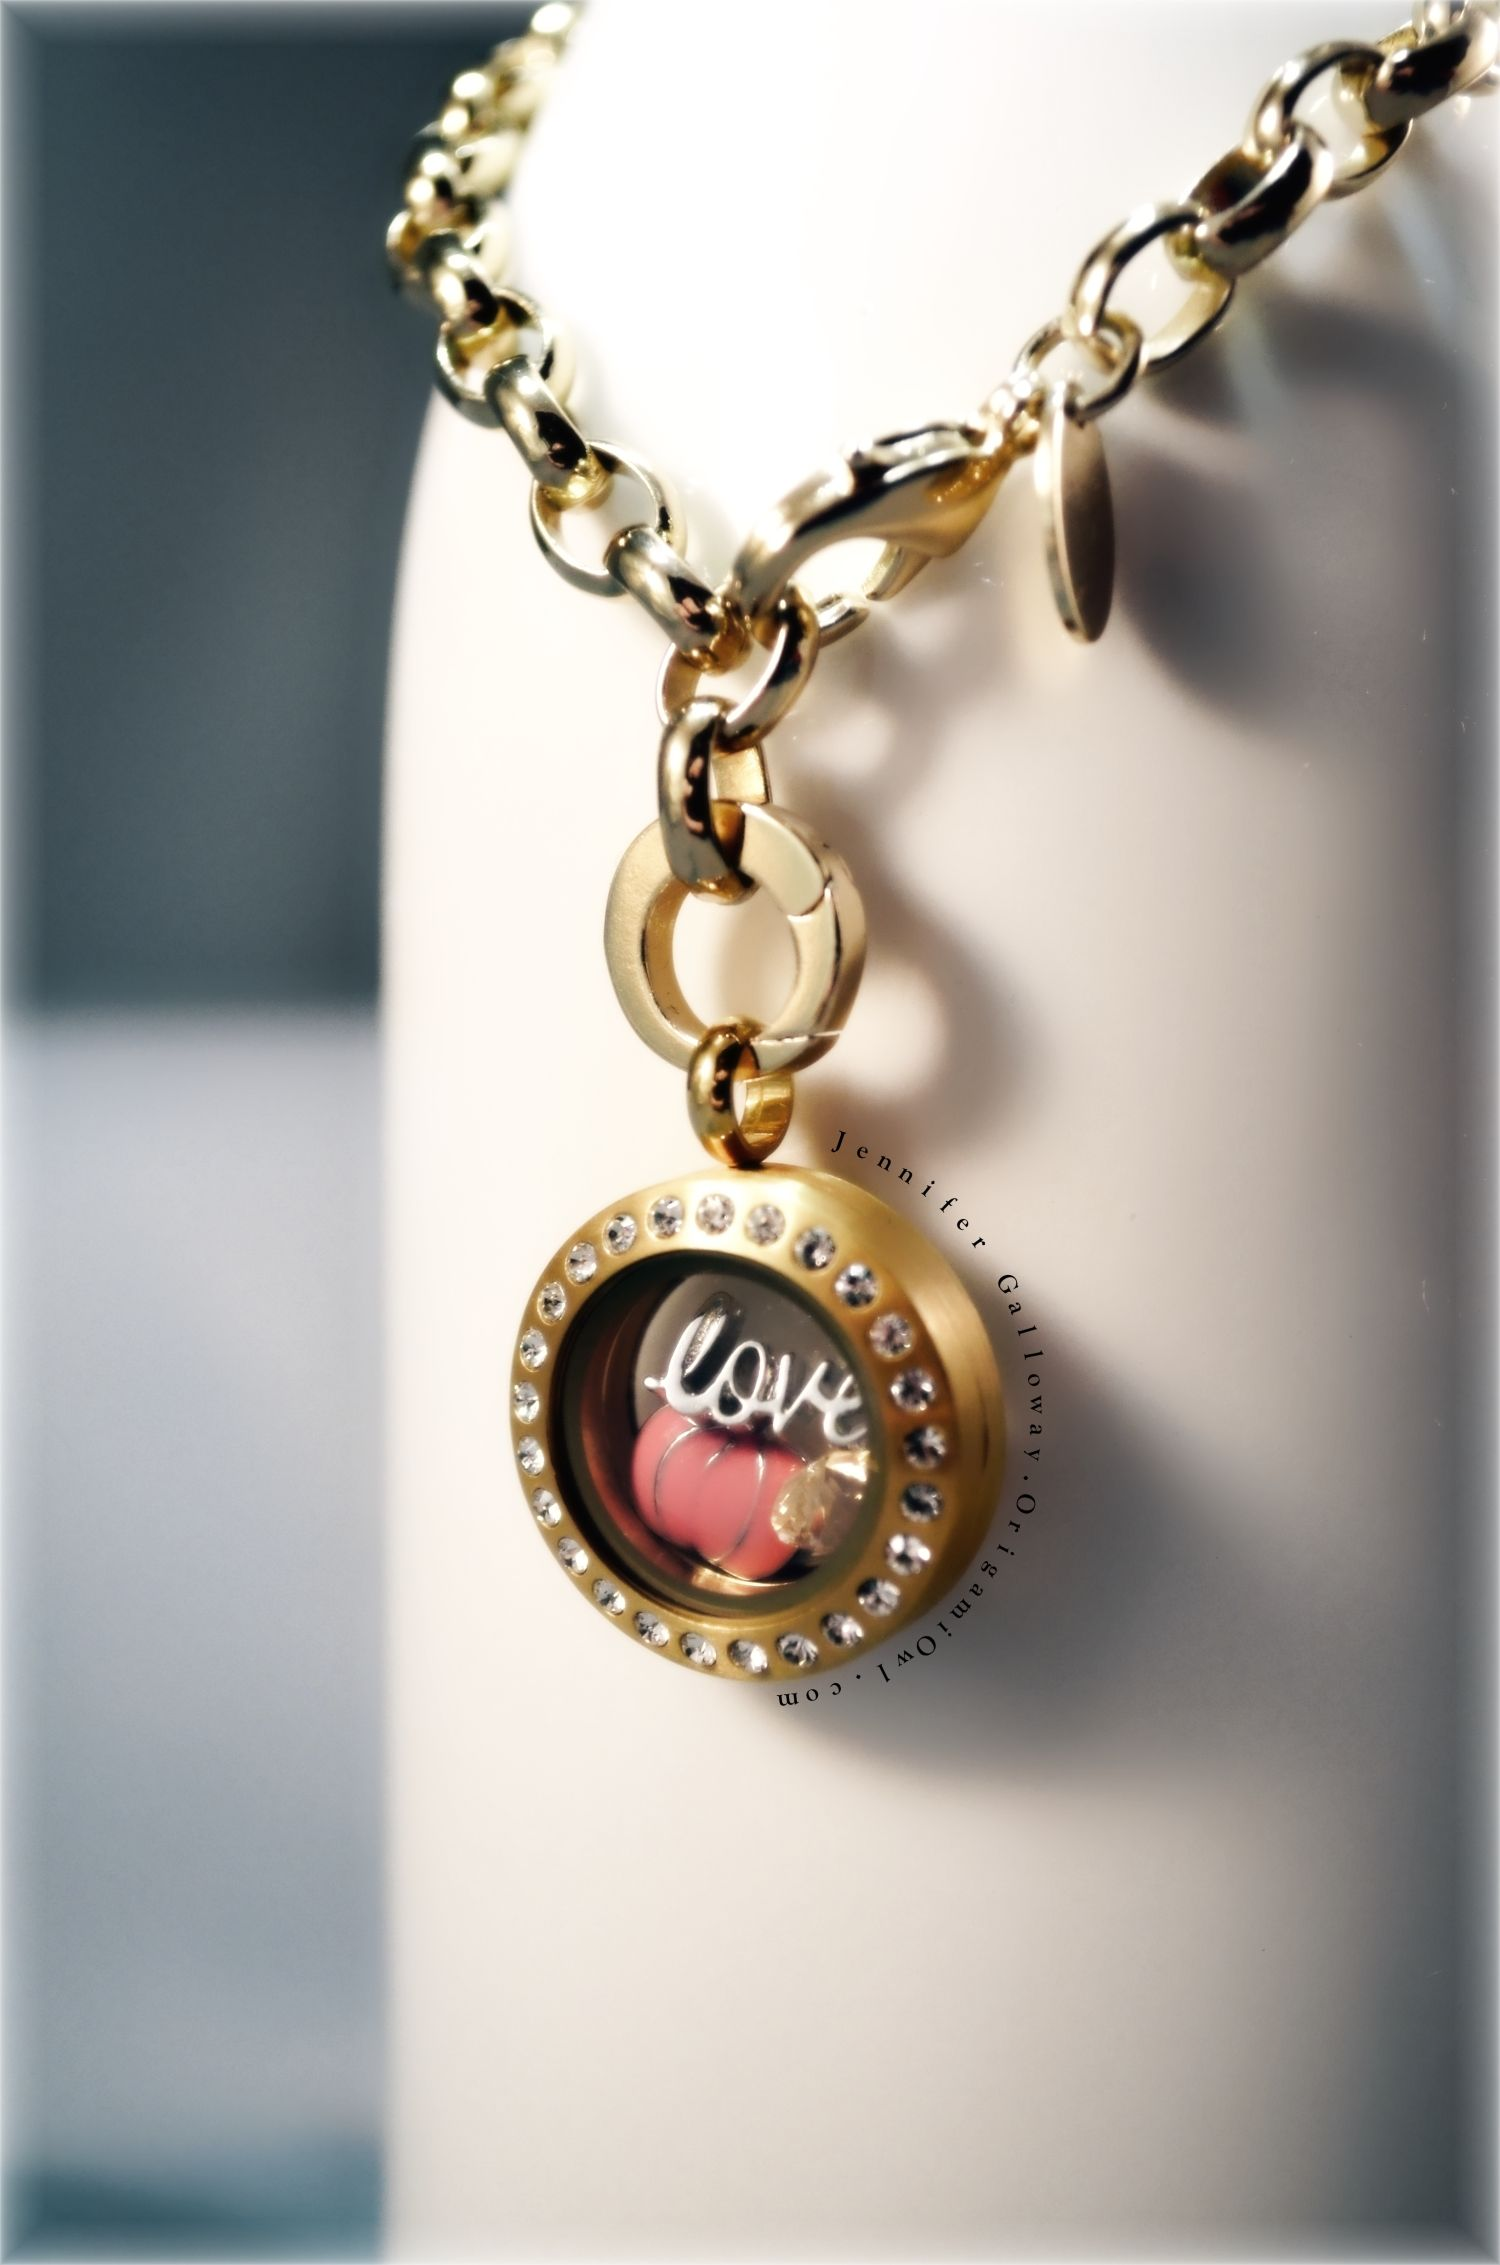 someone lockets on a gift each bracelet products dandelion valuable charm message fotor if with locket to you from or person it new make show how holds wish custom resonates connected wear keep is and their